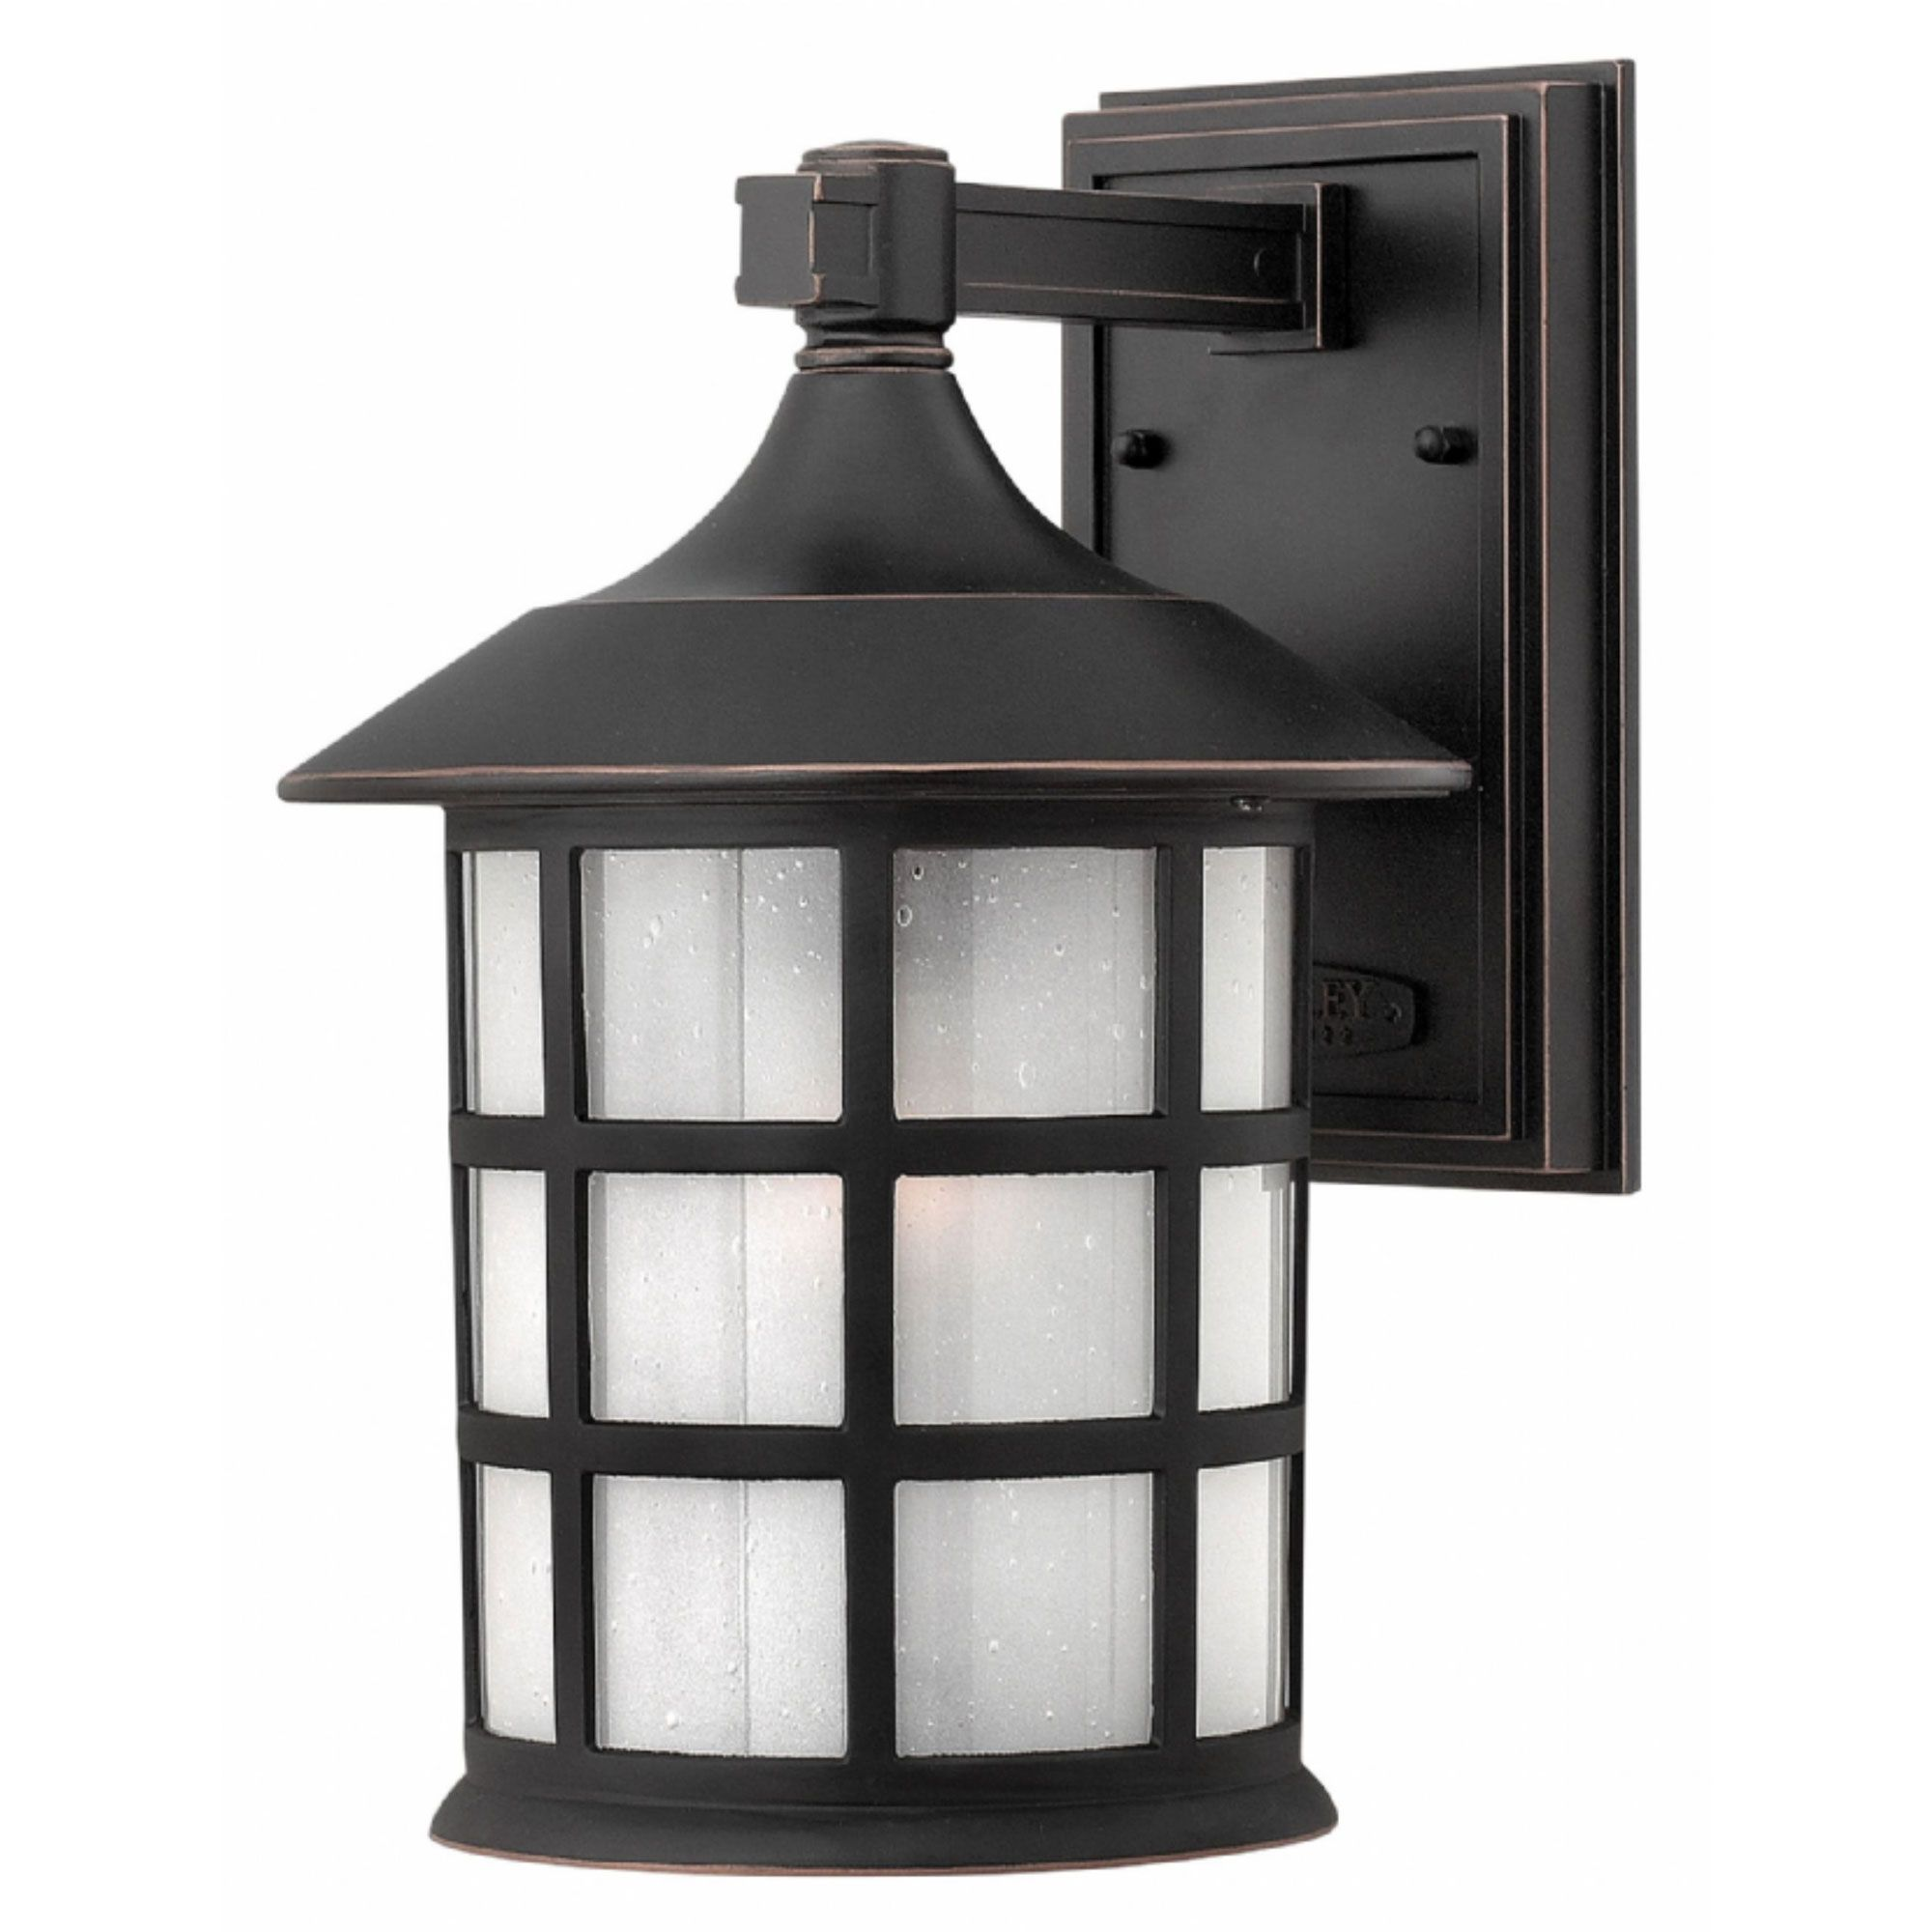 The Freeport Outdoor Wall Sconce features a classic New England design. This timeless, traditional style will complement a variety of exteriors. Available with a Black or Oil Rubbed Bronze finish with Clear Seedy Glass or an Olde Penny finish with Etched Seedy Glass. Available in three sizes and with incandescent or LED lamping.  Incandescent: 75/100 watt 120 volt A19 medium base bulbs are required, but not included. LED: 10/15 watt 120 volt LED module is included. Intelligent driver allows…